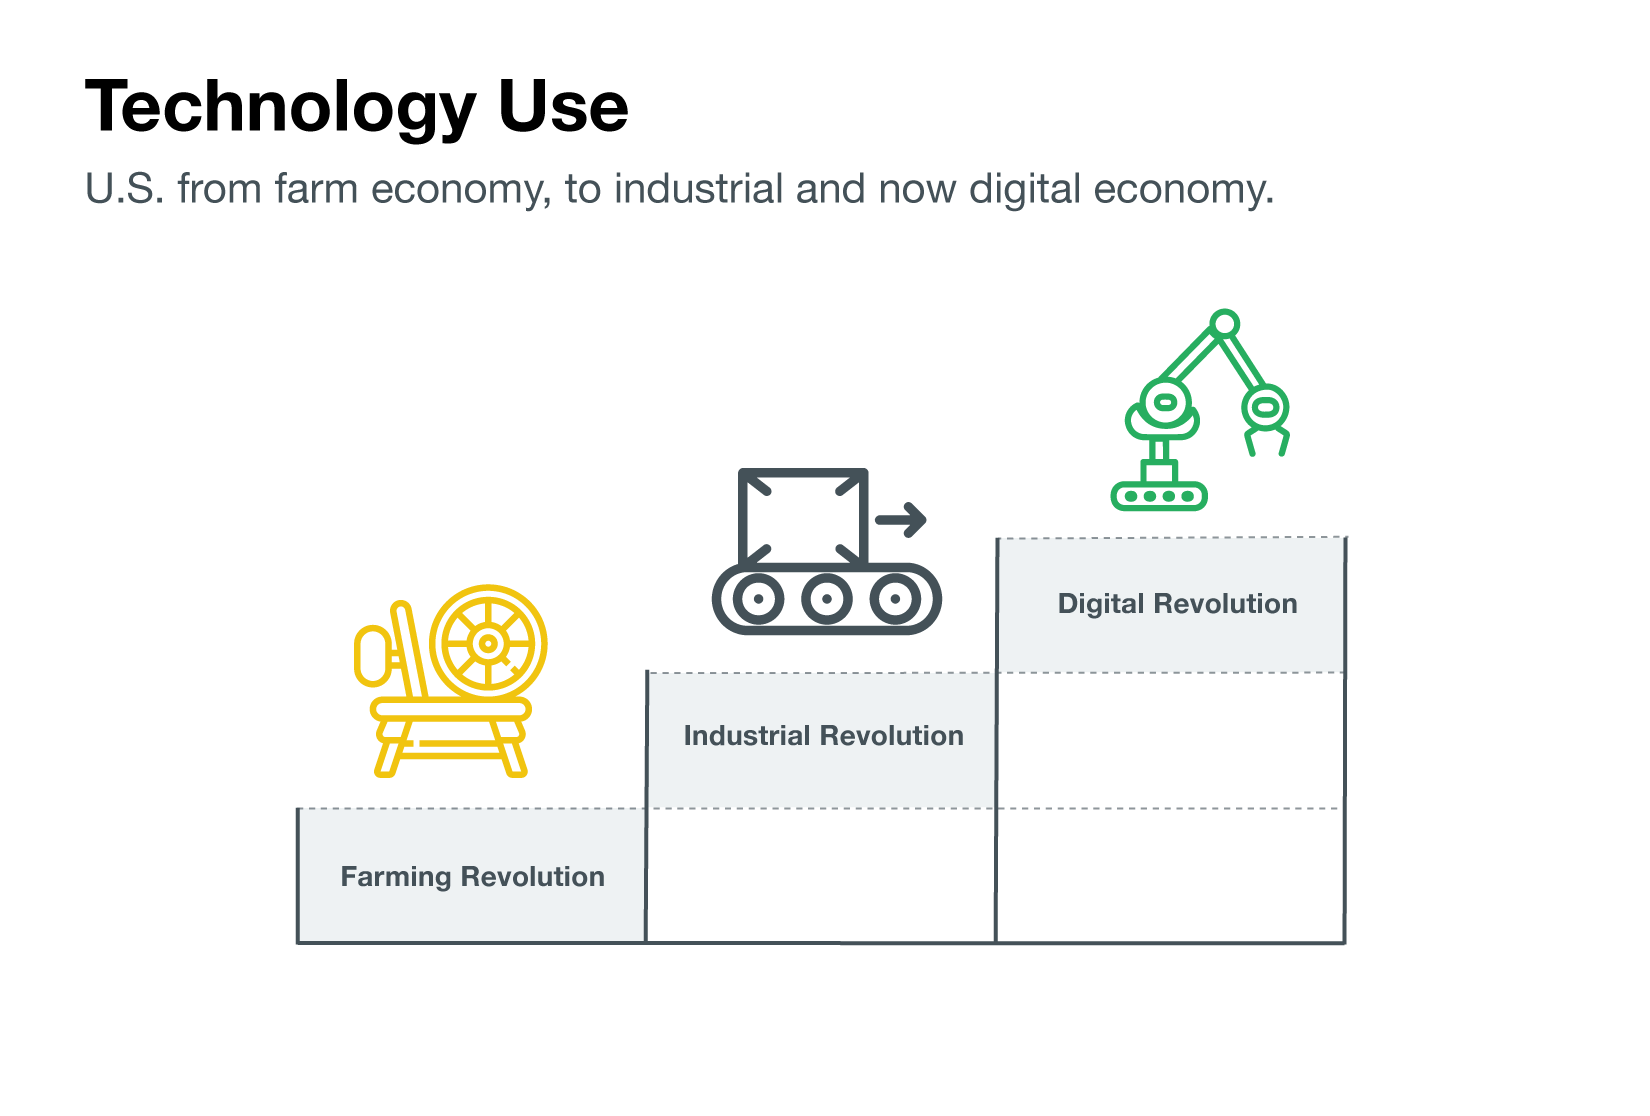 US stages from farm economy to industrial to digital